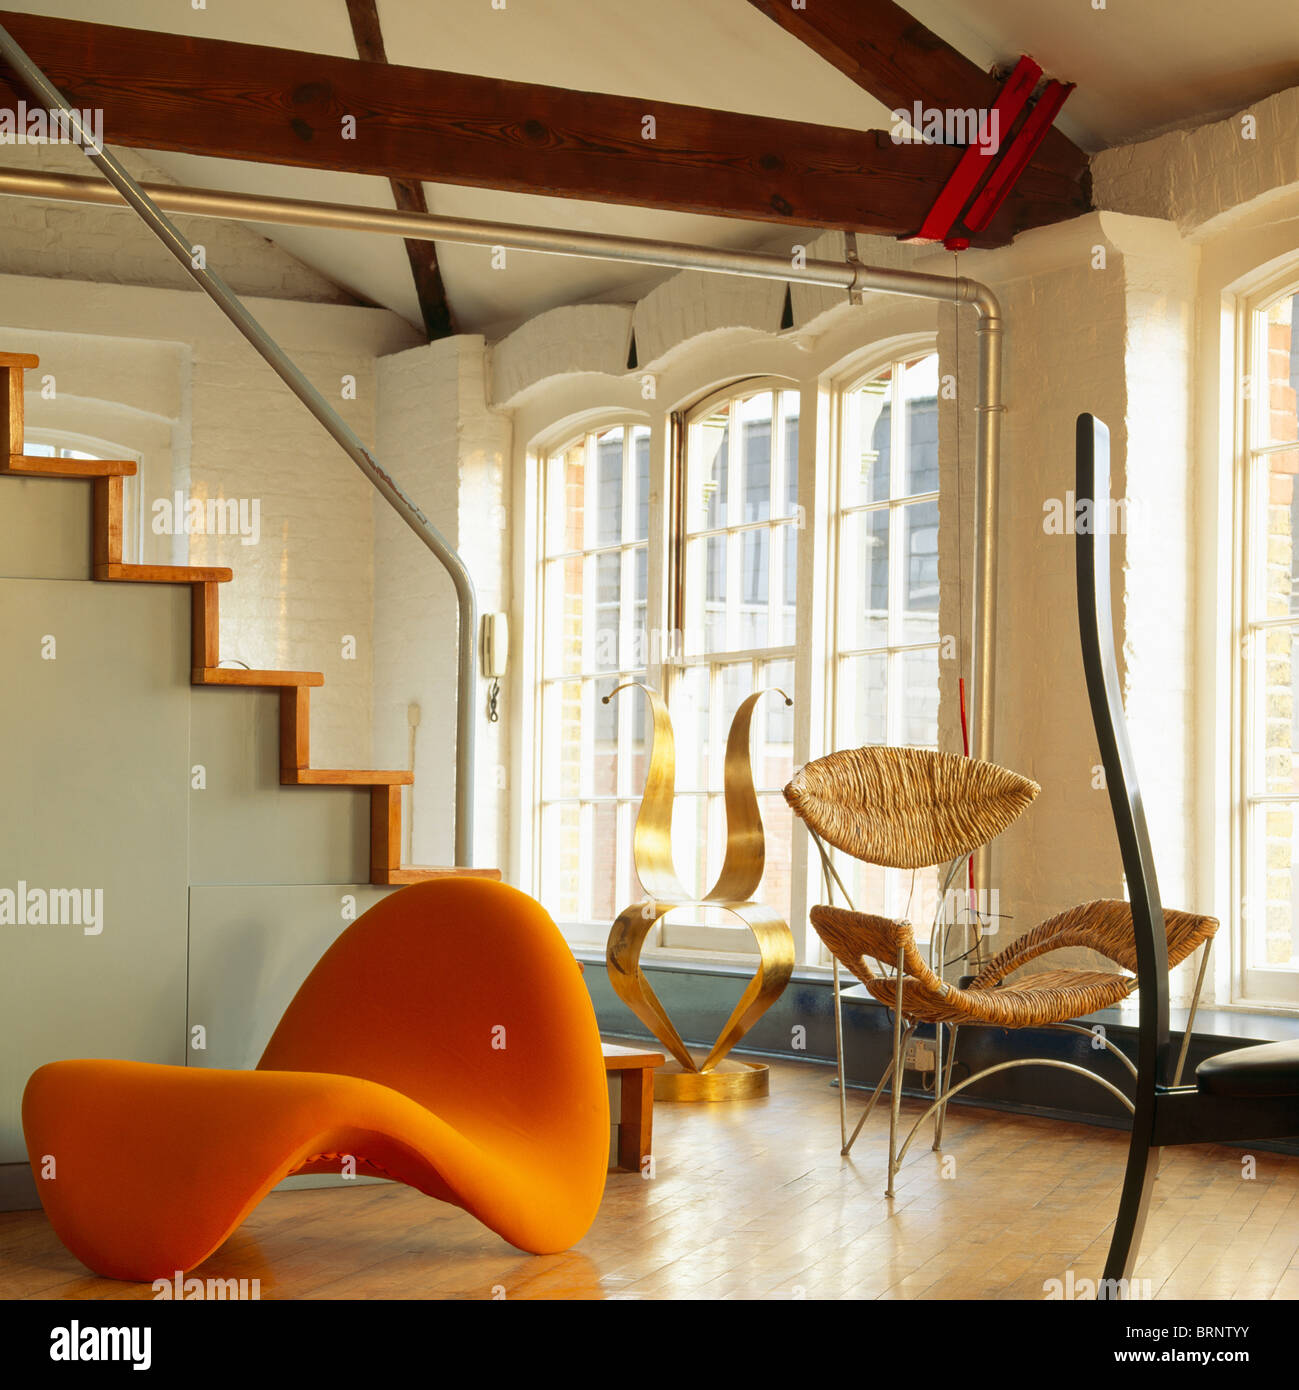 Pierre Paulin Chaise And Tom Dixon Chair In Collection Of Modern Designer Chairs Loft Conversion Living Room